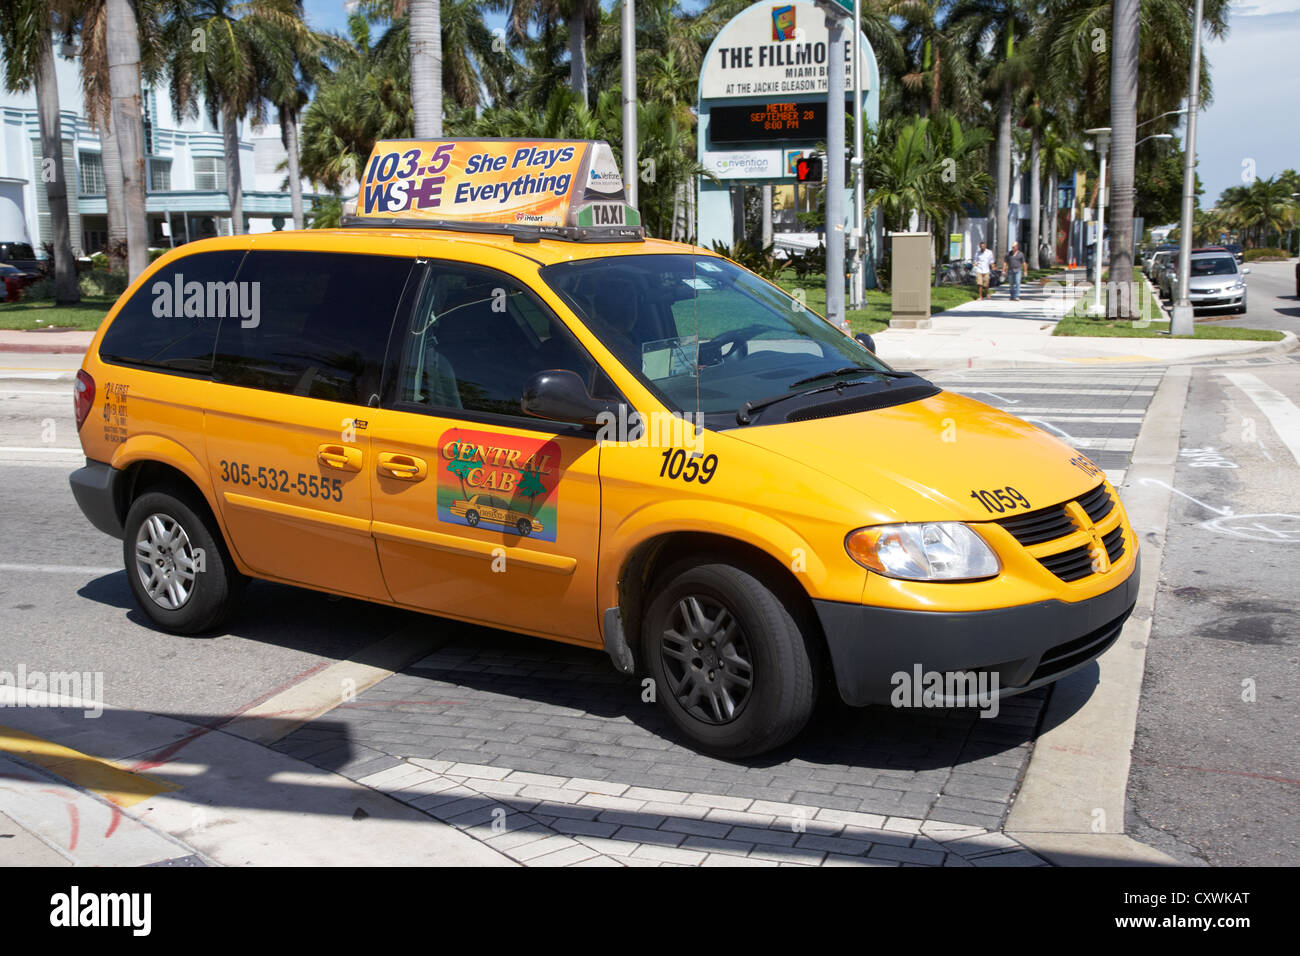 Taxi in miami : Anaheim resort rv park